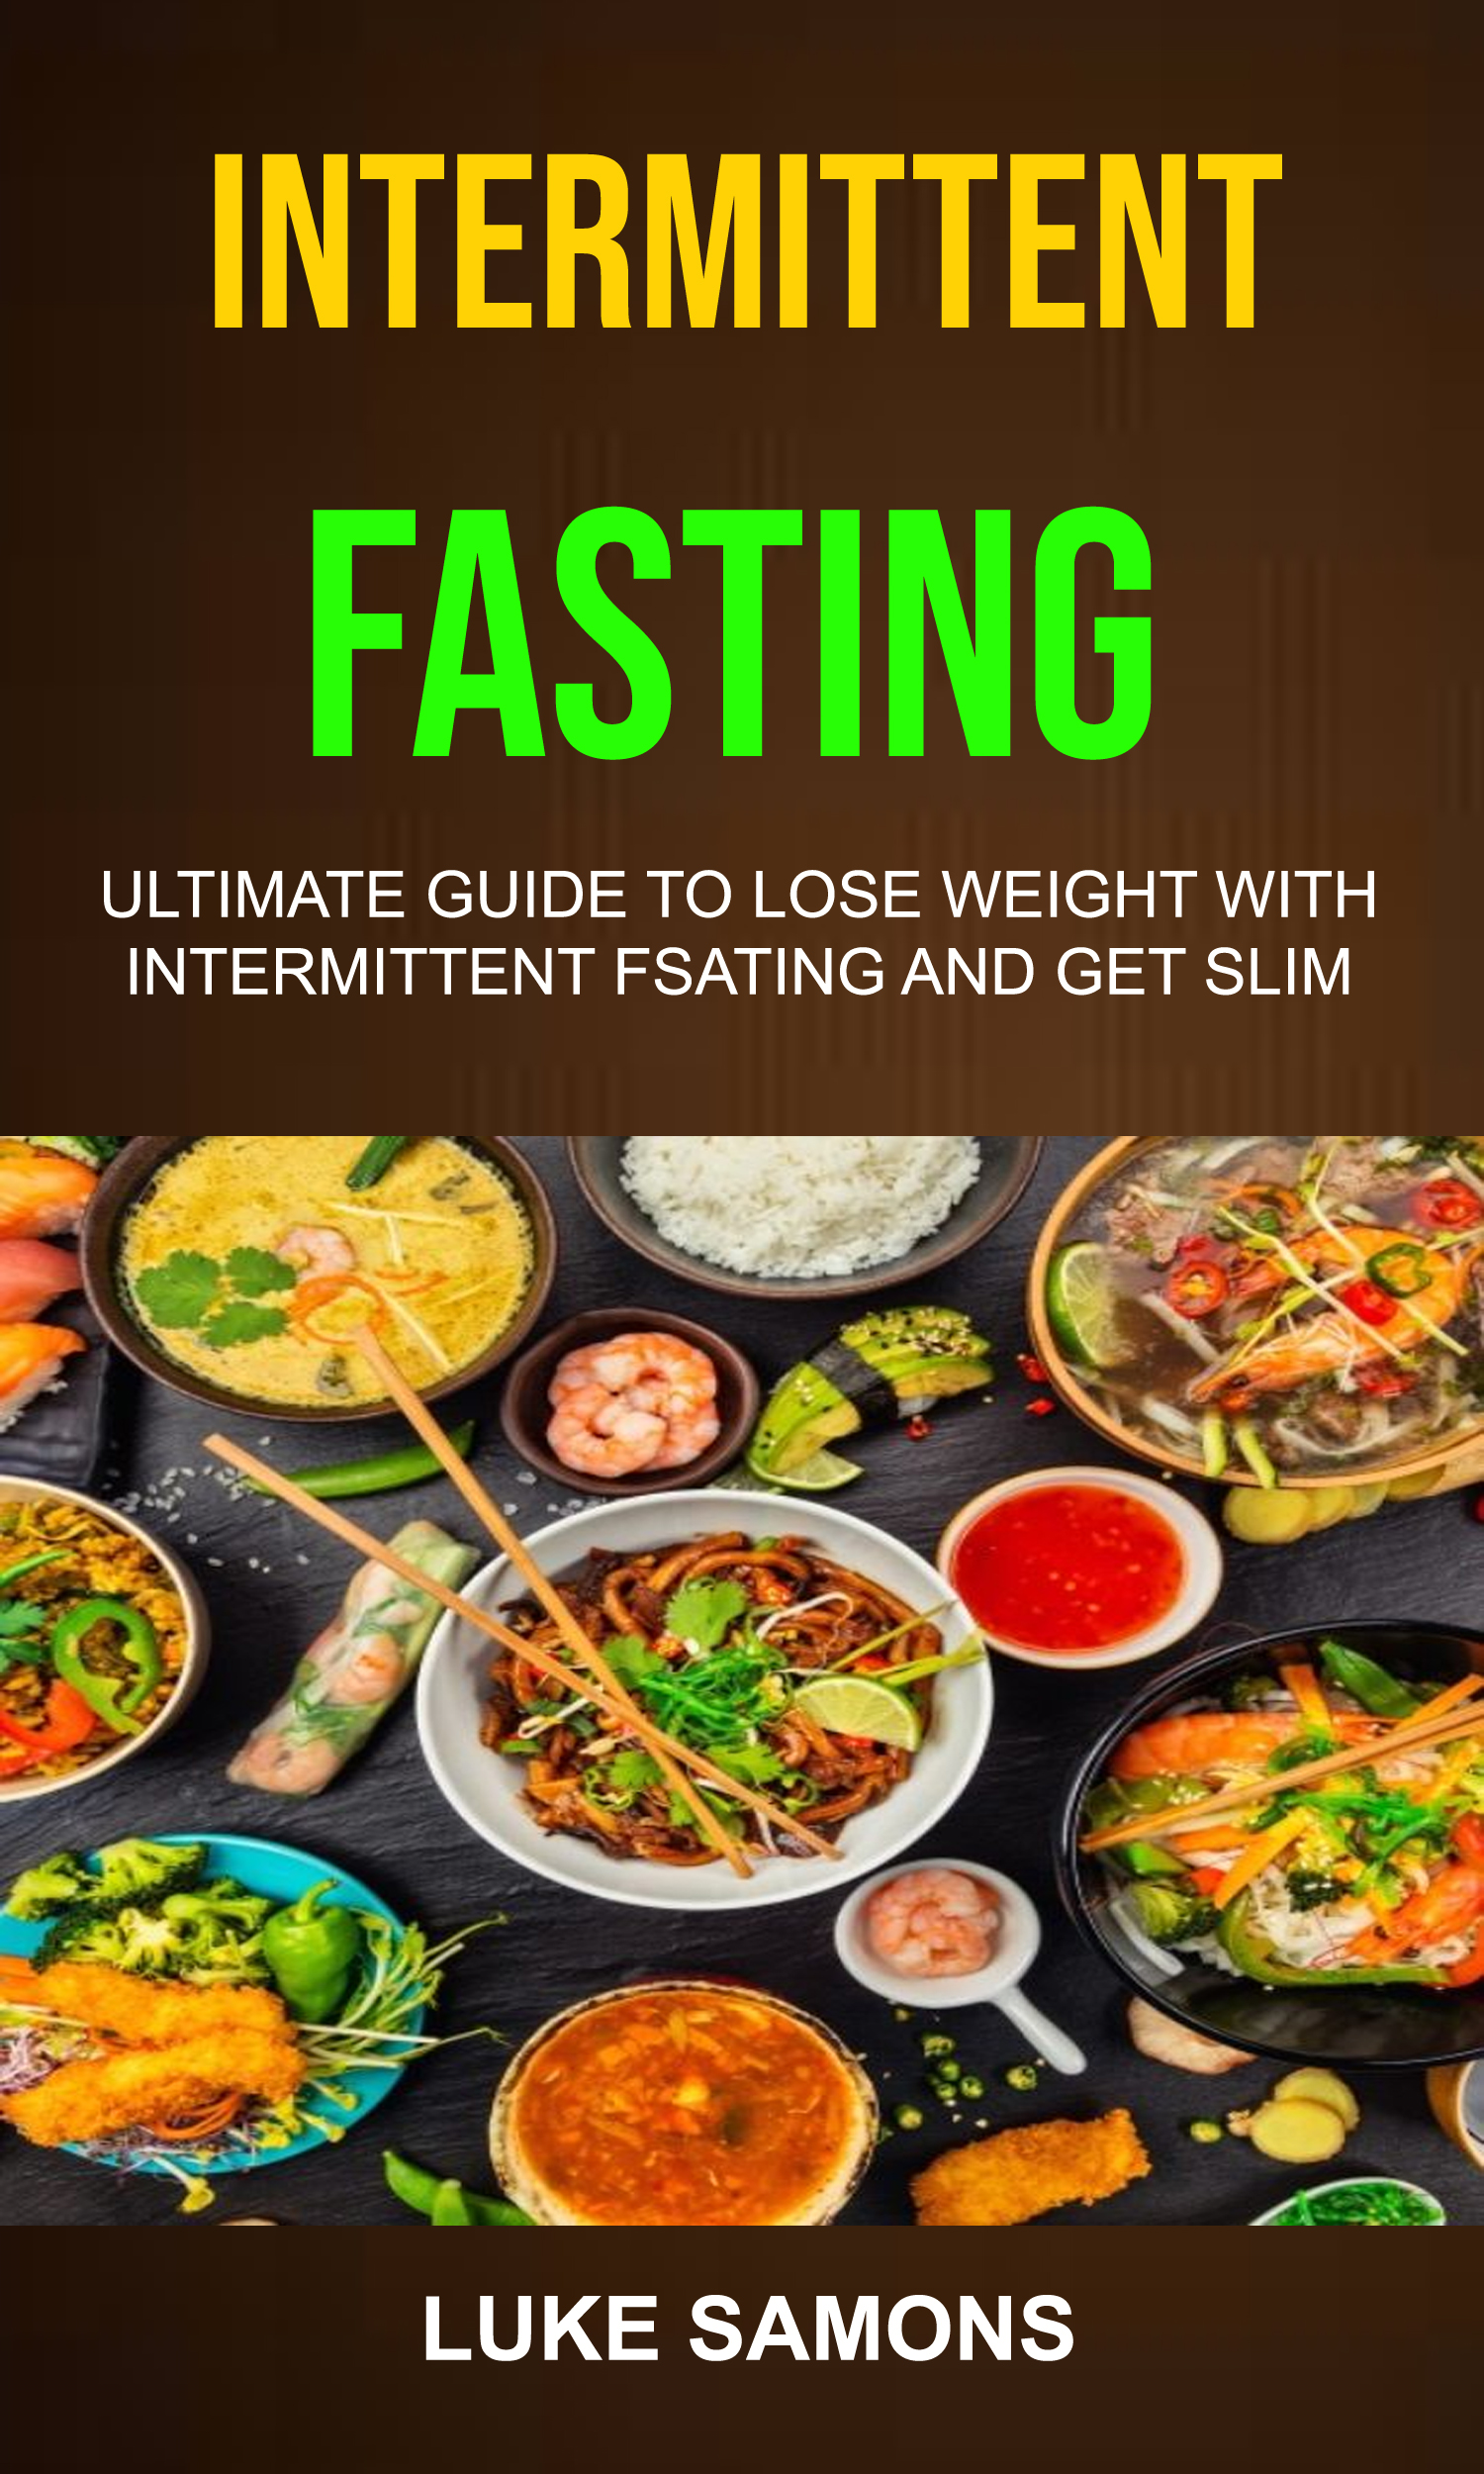 Intermittent fasting: ultimate guide to lose weight with intermittent fsating and get slim